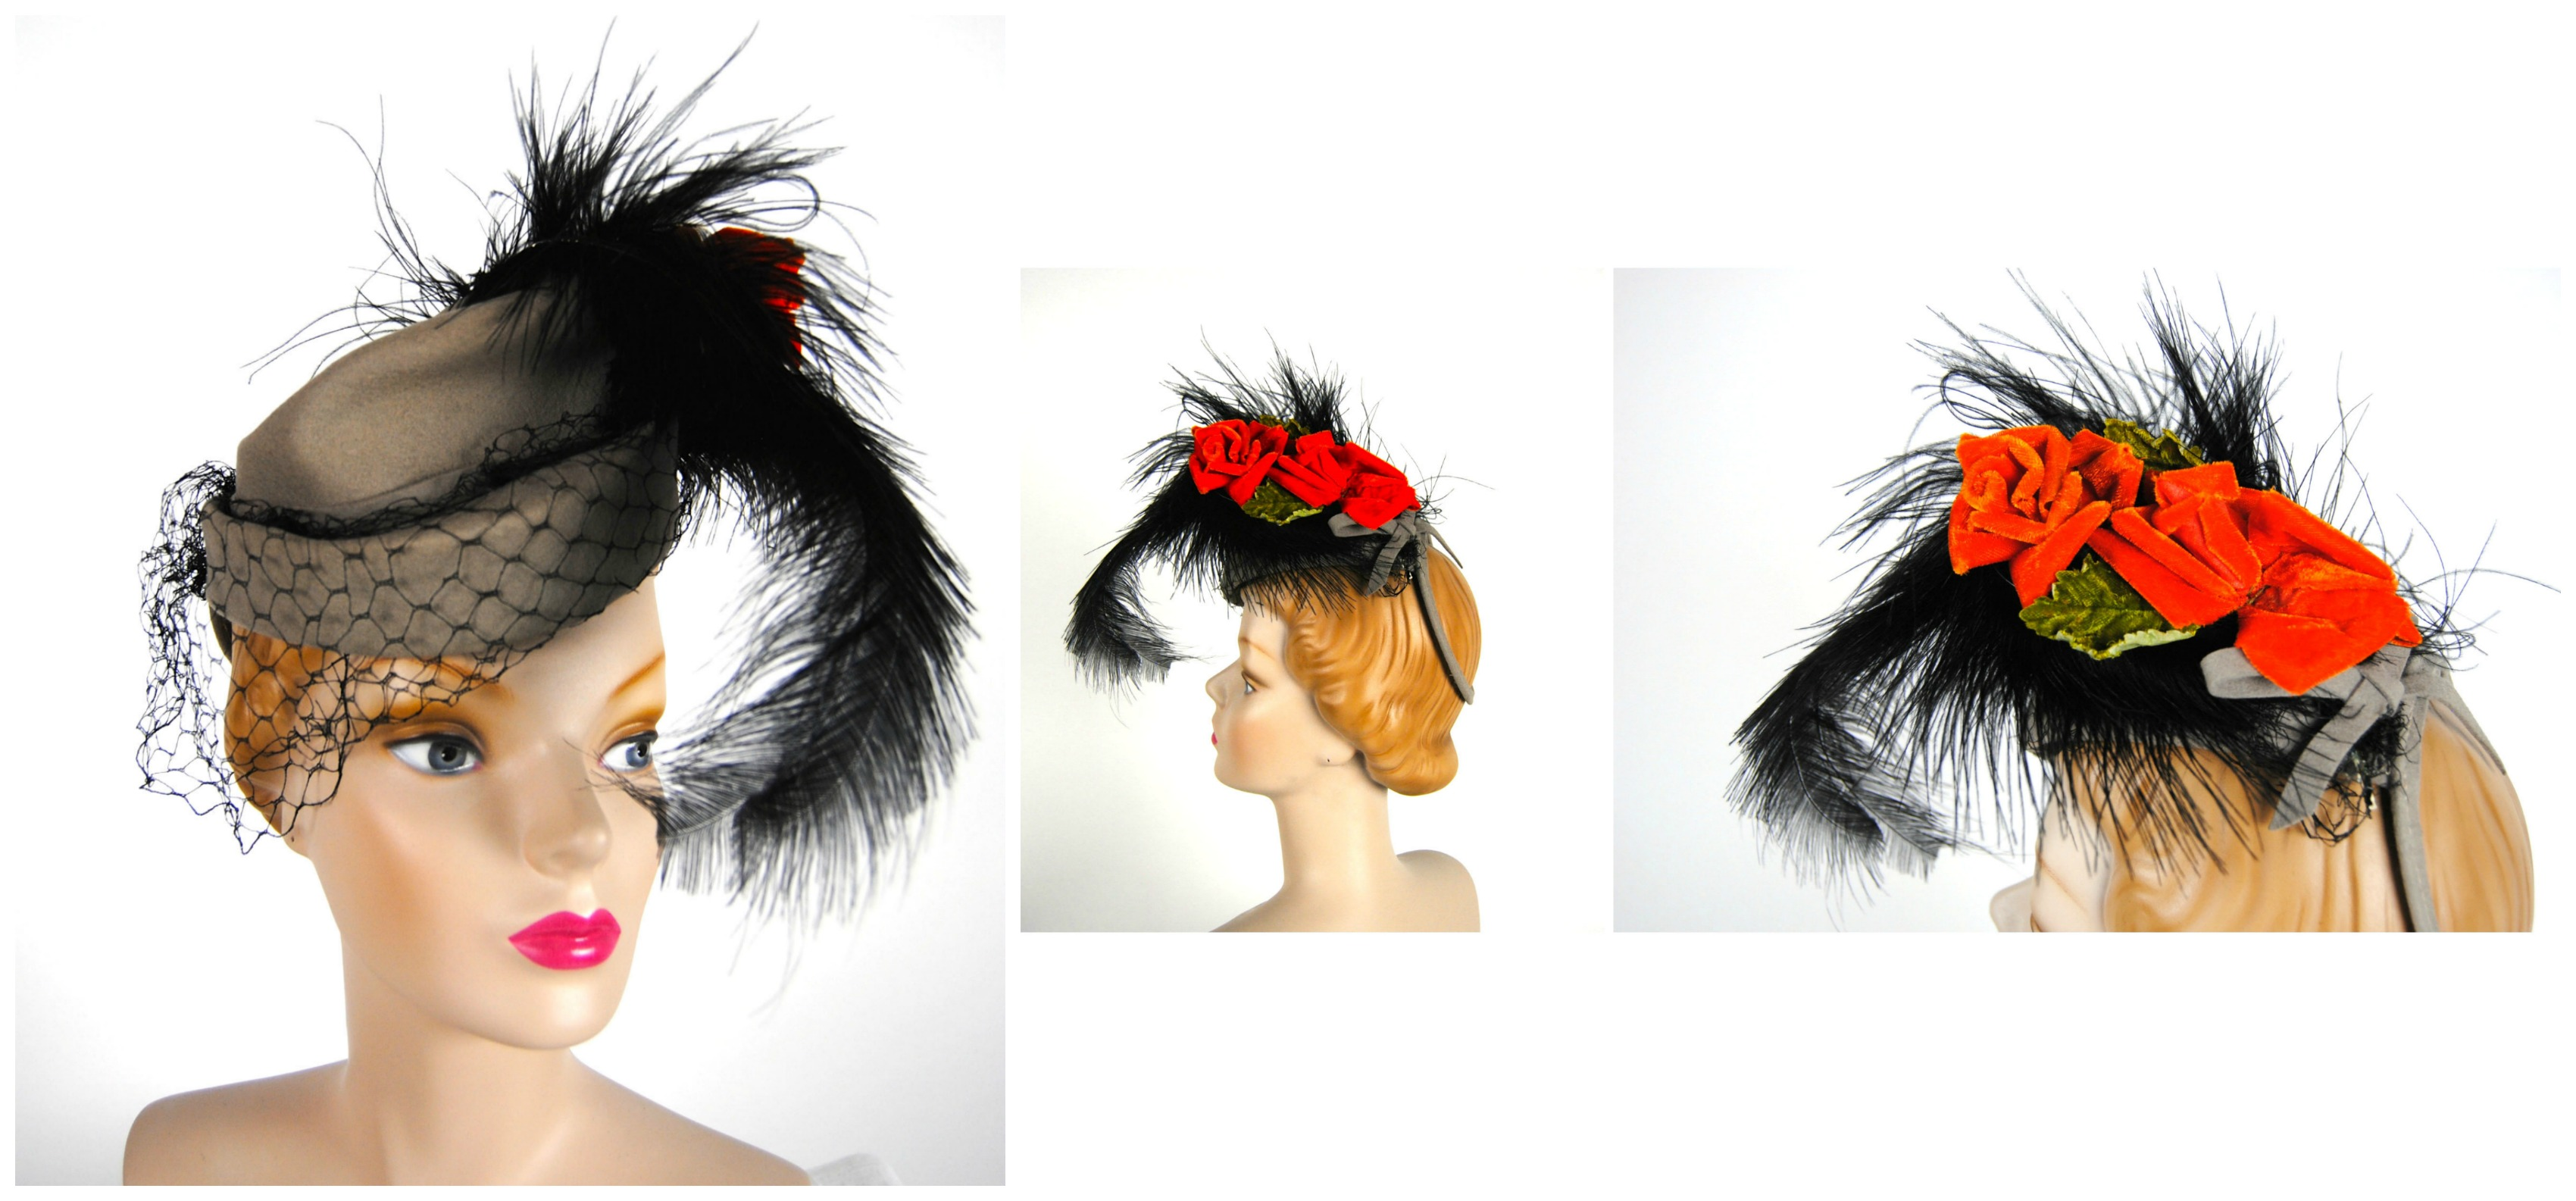 Ian Drummond Collection IDC Toronto Wardrobe Rentals Womens 40s Gray Black Feather Orange Rose Hat